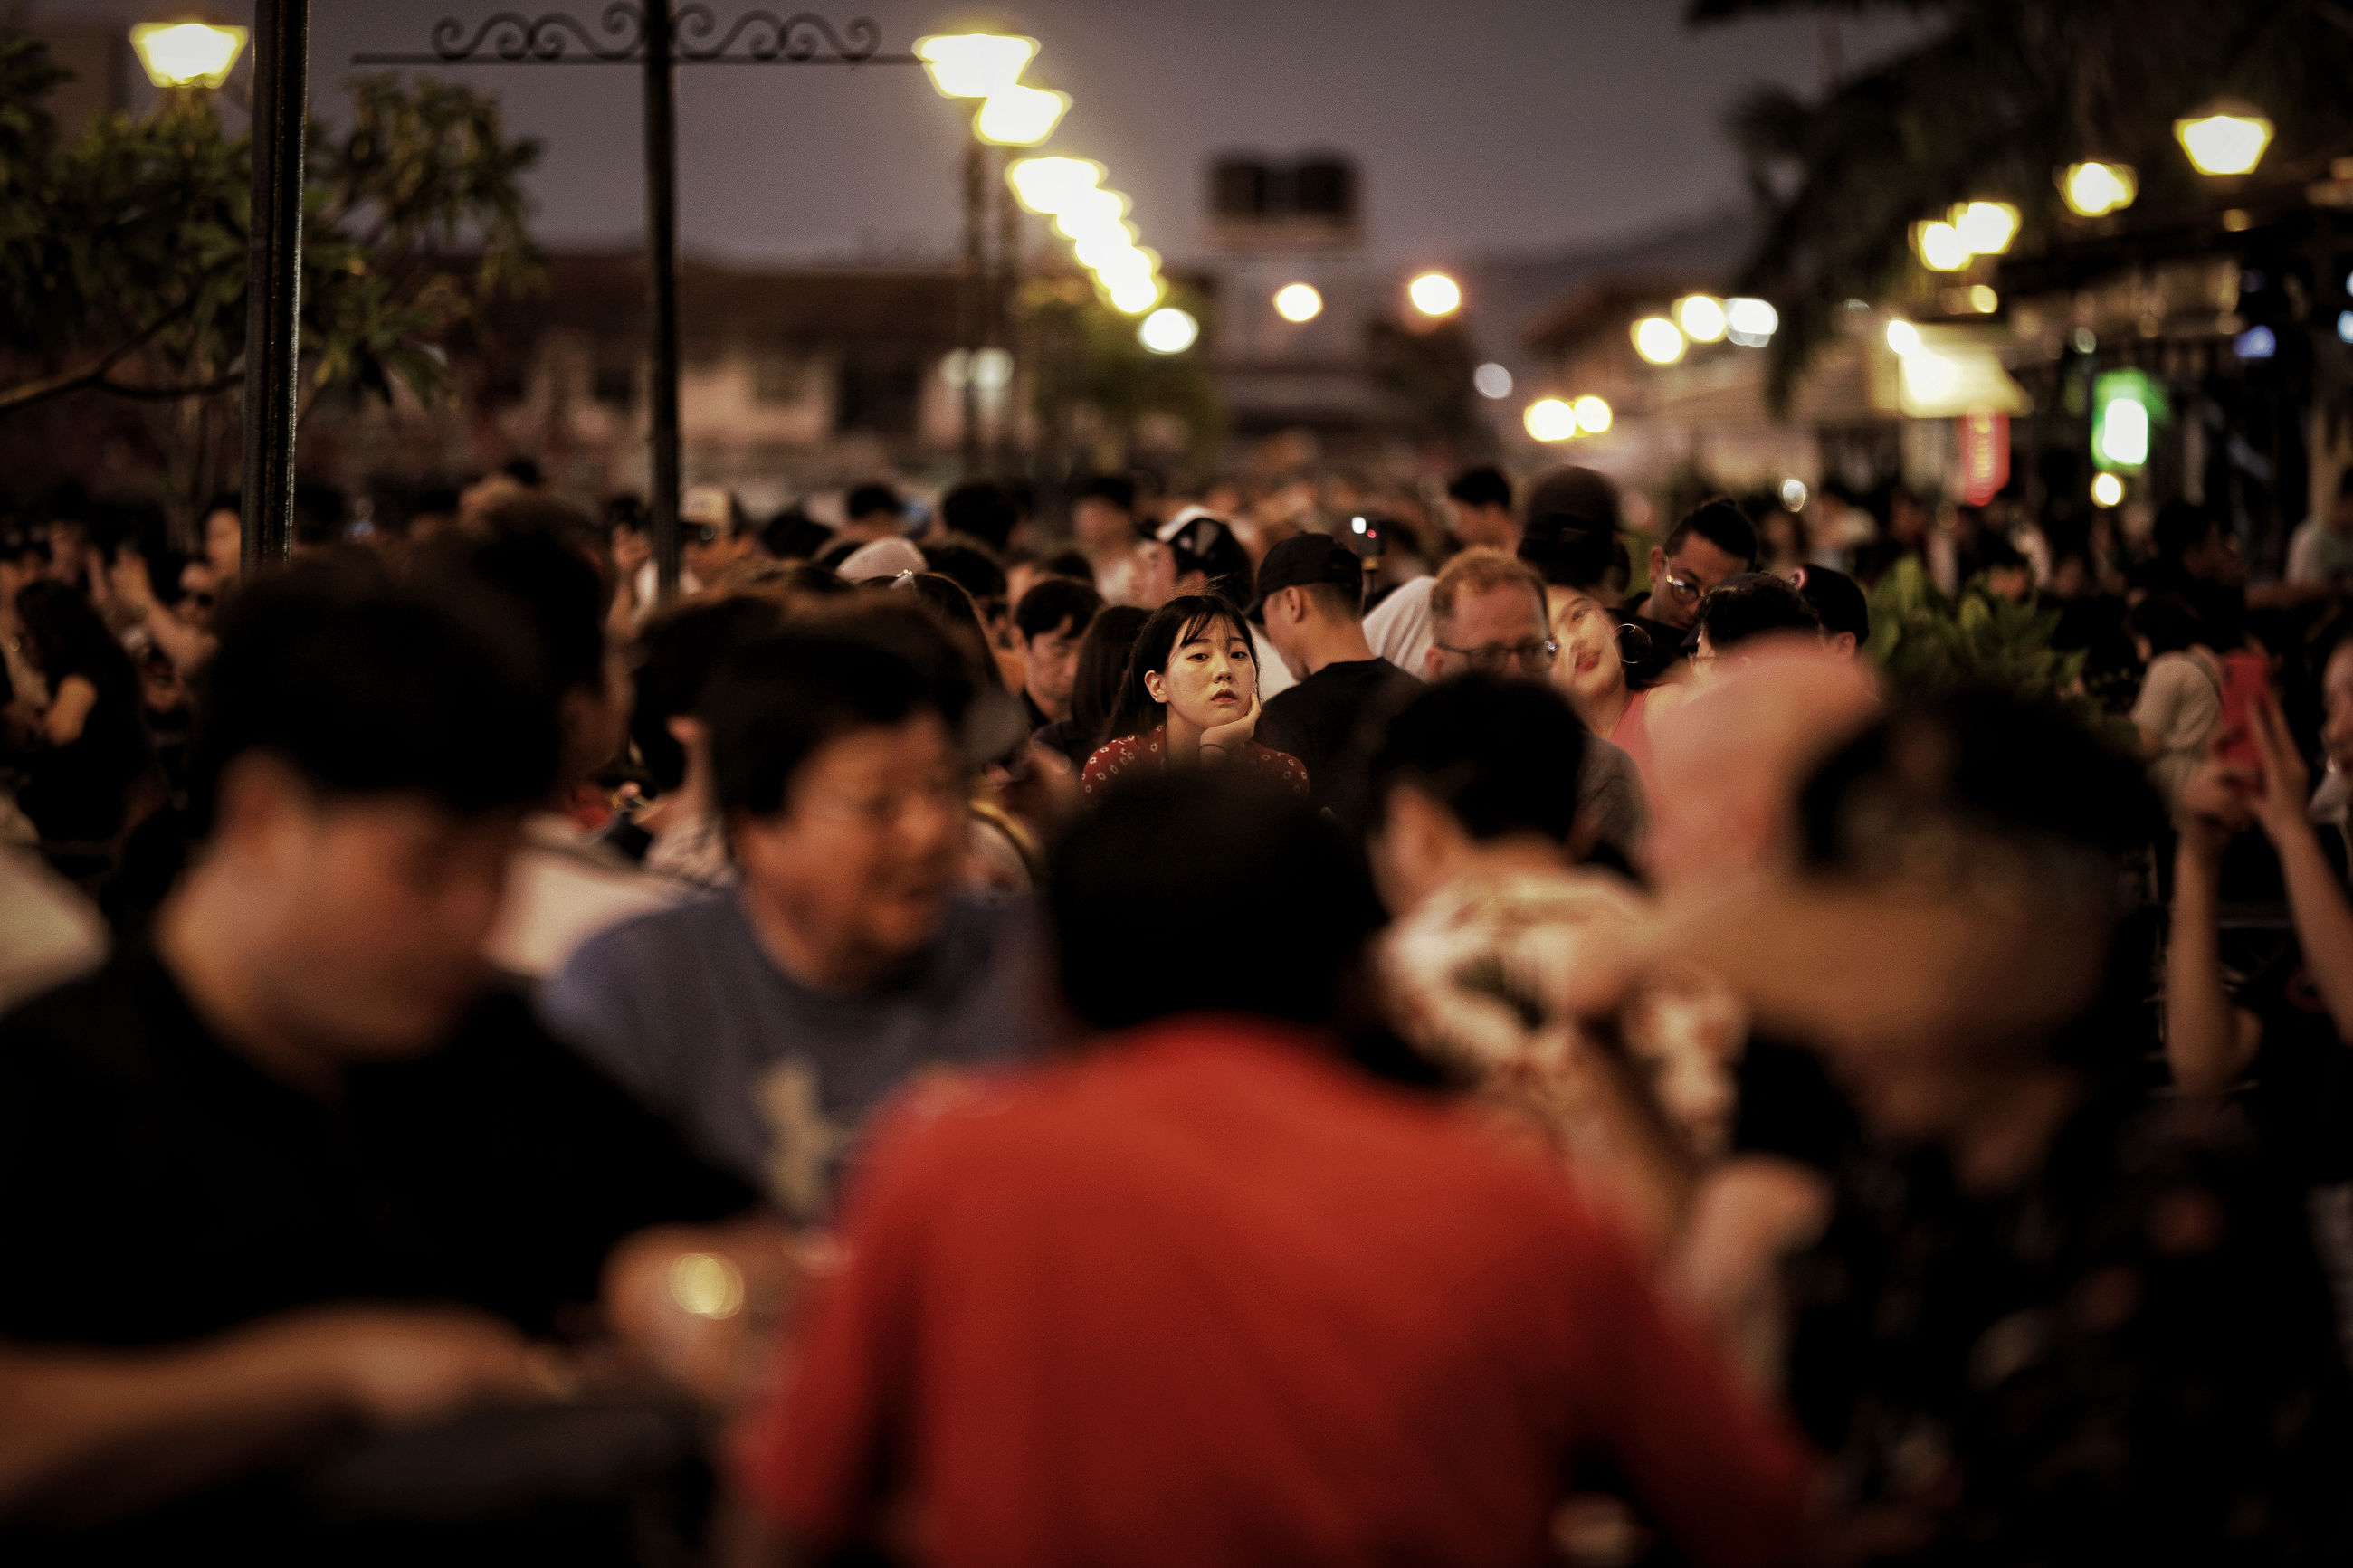 crowd, large group of people, real people, group of people, men, illuminated, women, lifestyles, adult, leisure activity, architecture, togetherness, selective focus, enjoyment, outdoors, lighting equipment, city, night, street, nightlife, spectator, stage, excitement